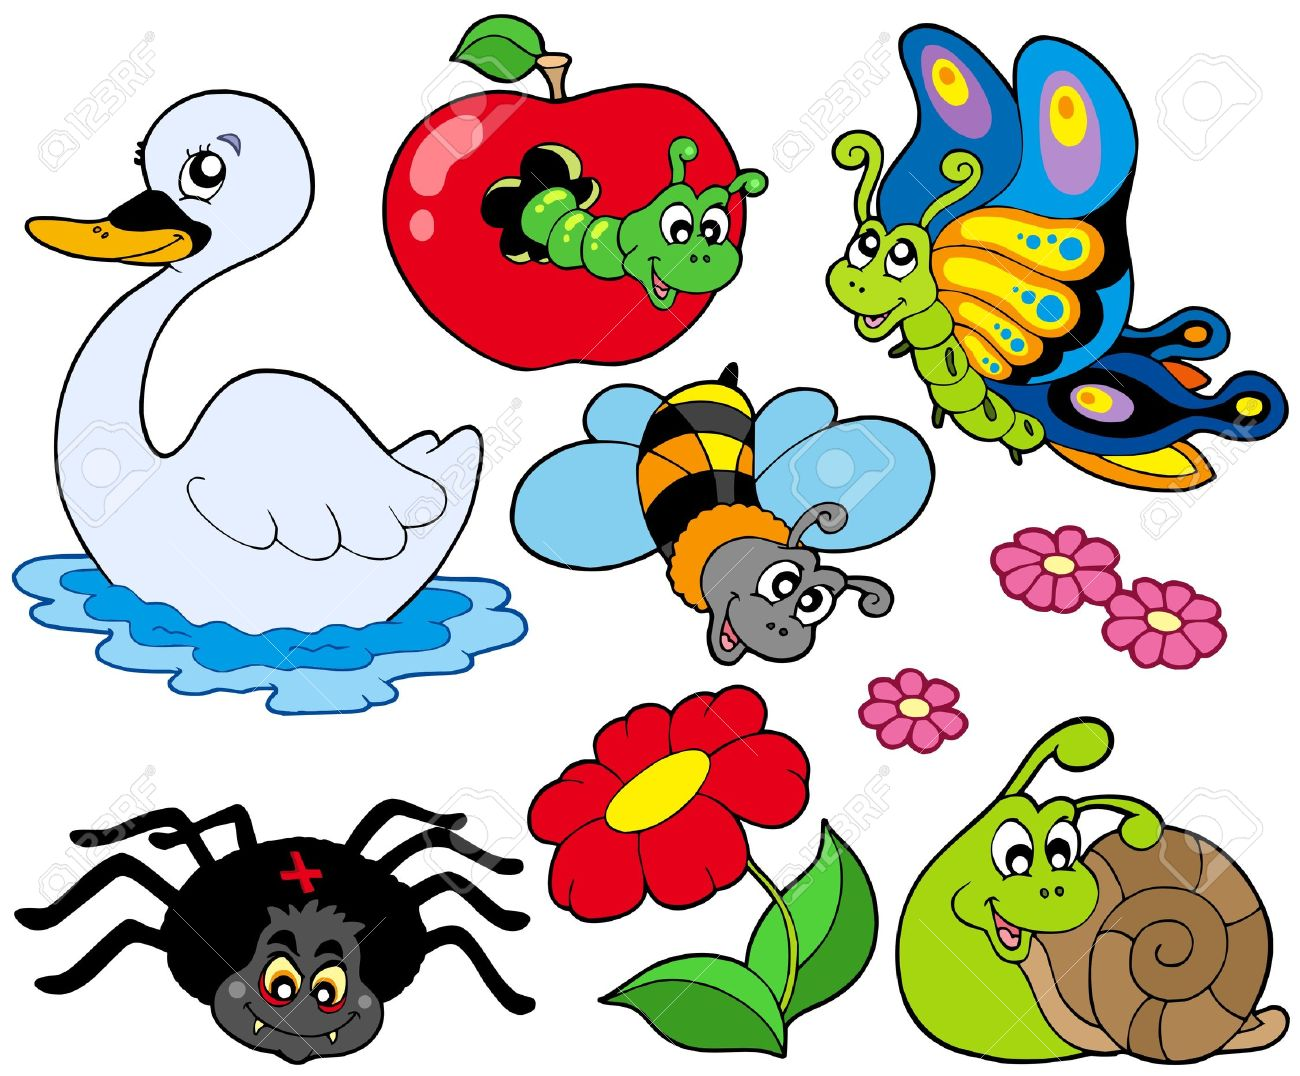 clipart collection - Clipart Collection